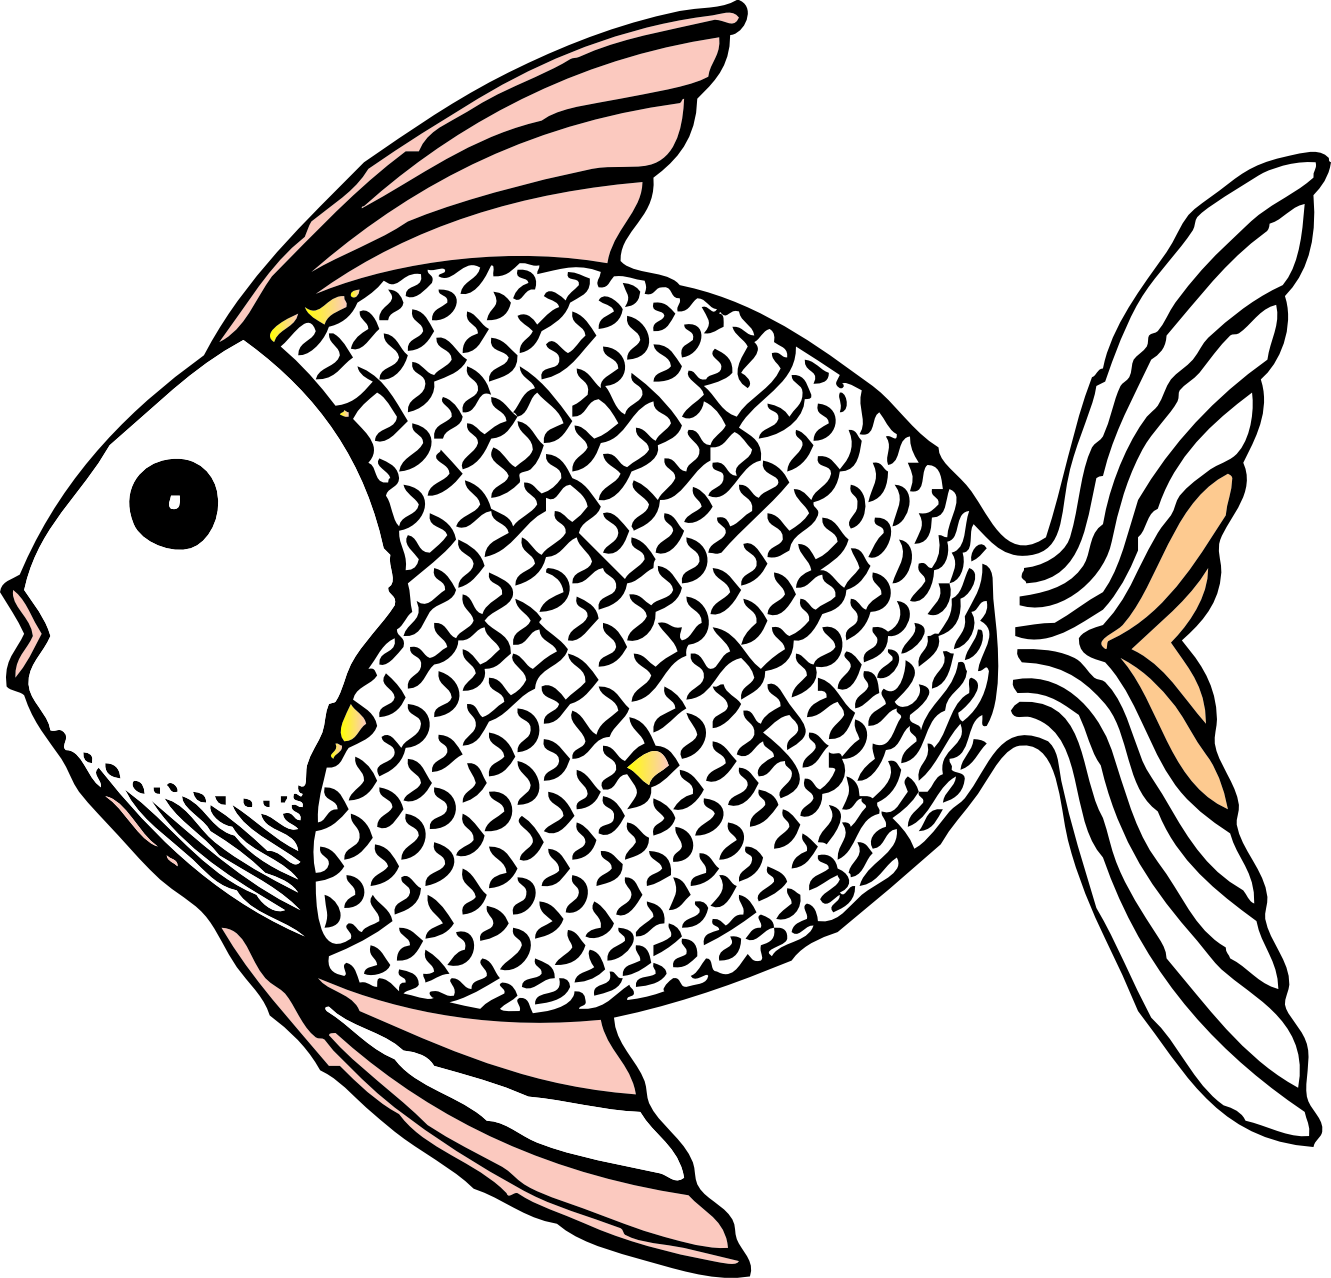 1331x1278 Fish black and white fish clip art black and white free clipart